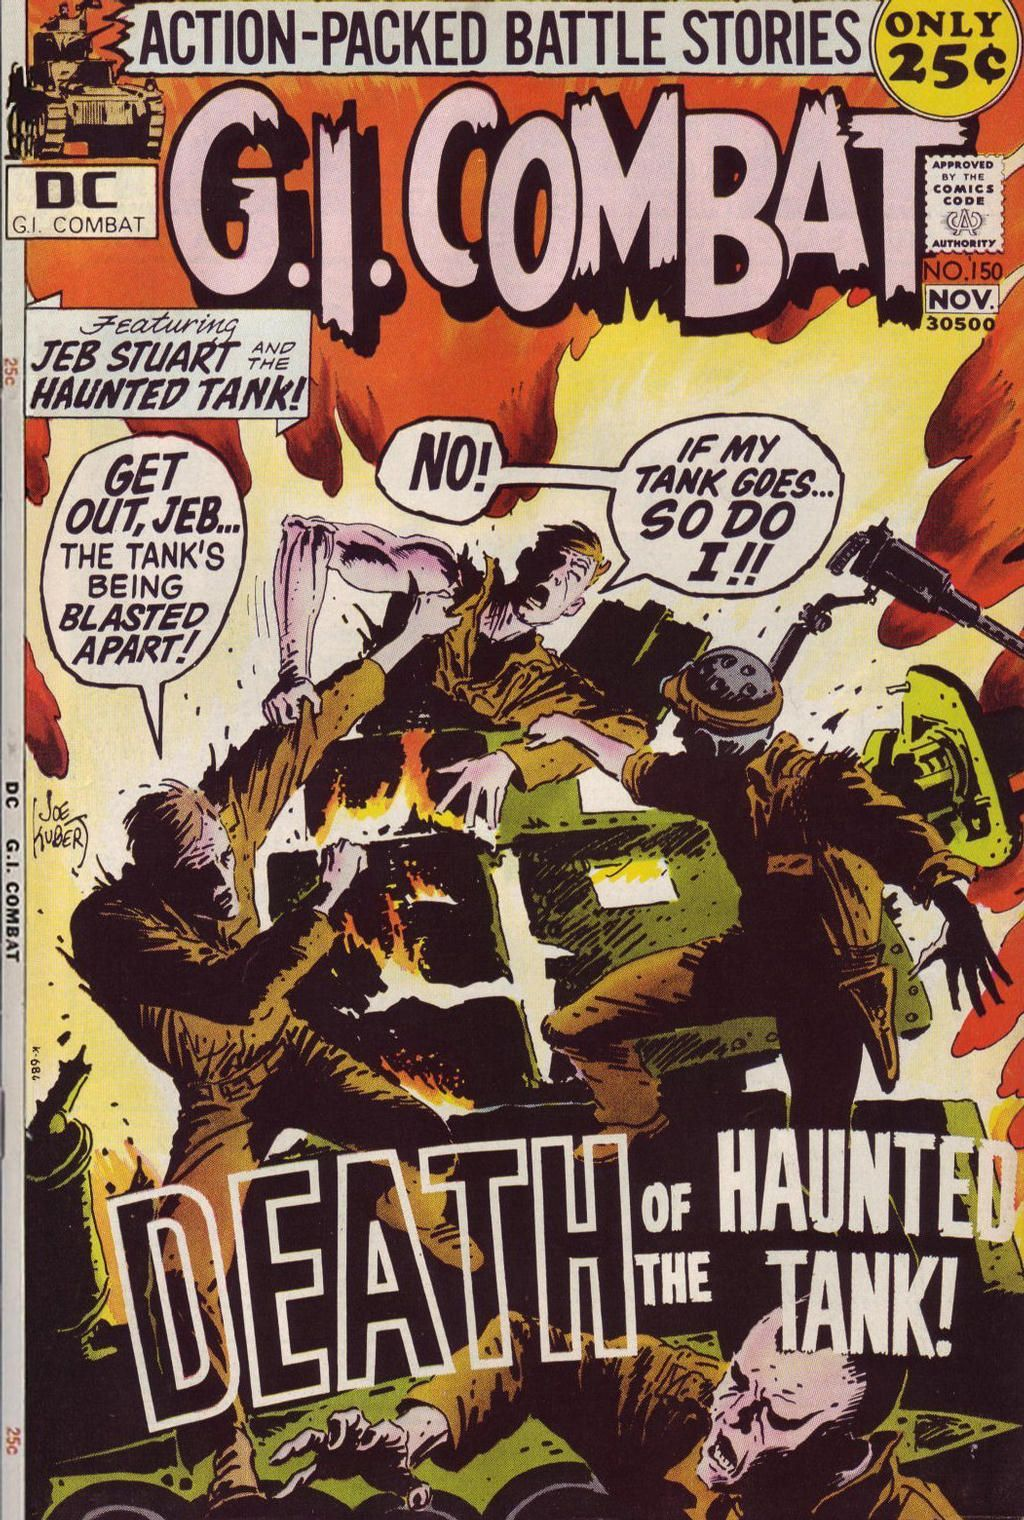 Death of the haunted tank g i combat 150 november 1971 wacky comic books like a wwii tank haunted by the ghost of confederate general j also ones that have word balloons on the cover publicscrutiny Choice Image